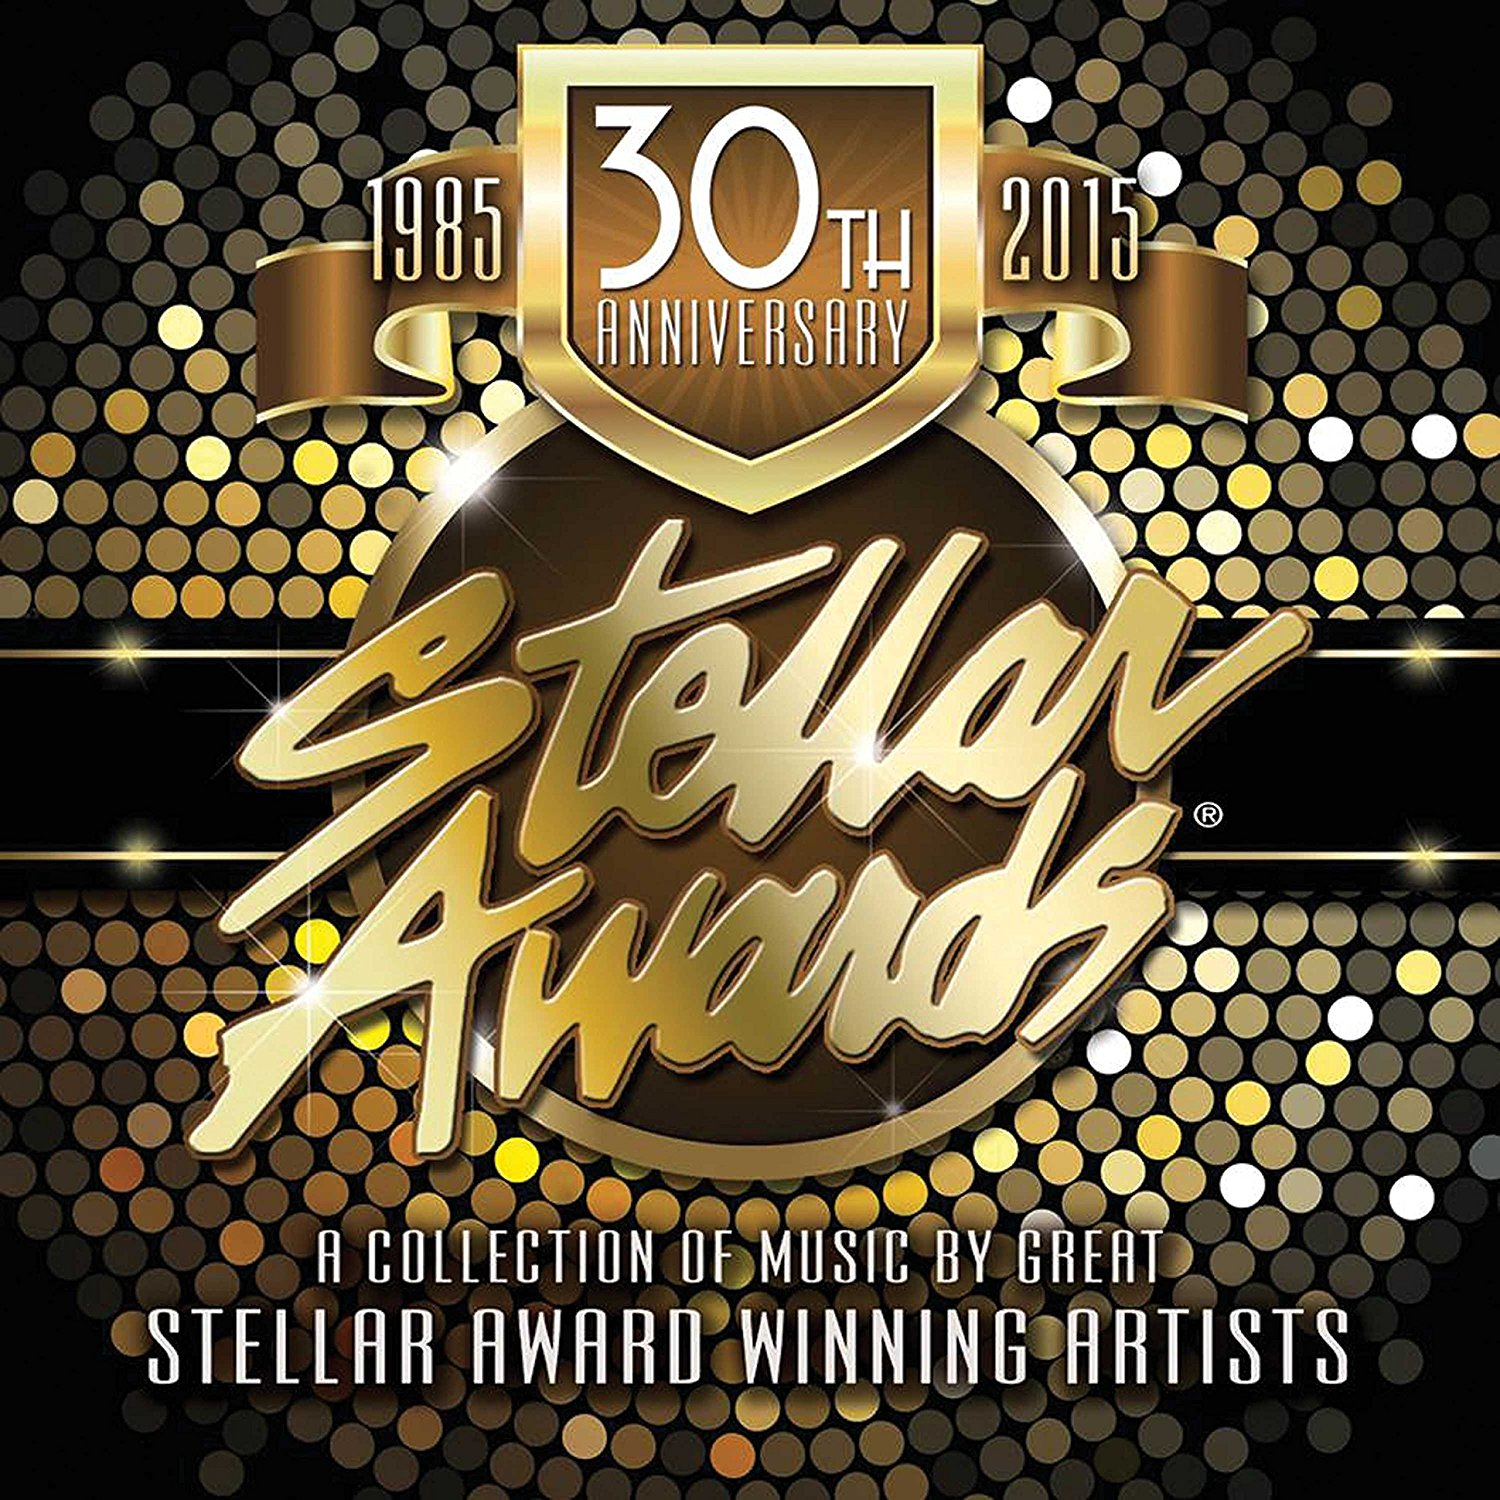 The Stellar Gospel Music Awards